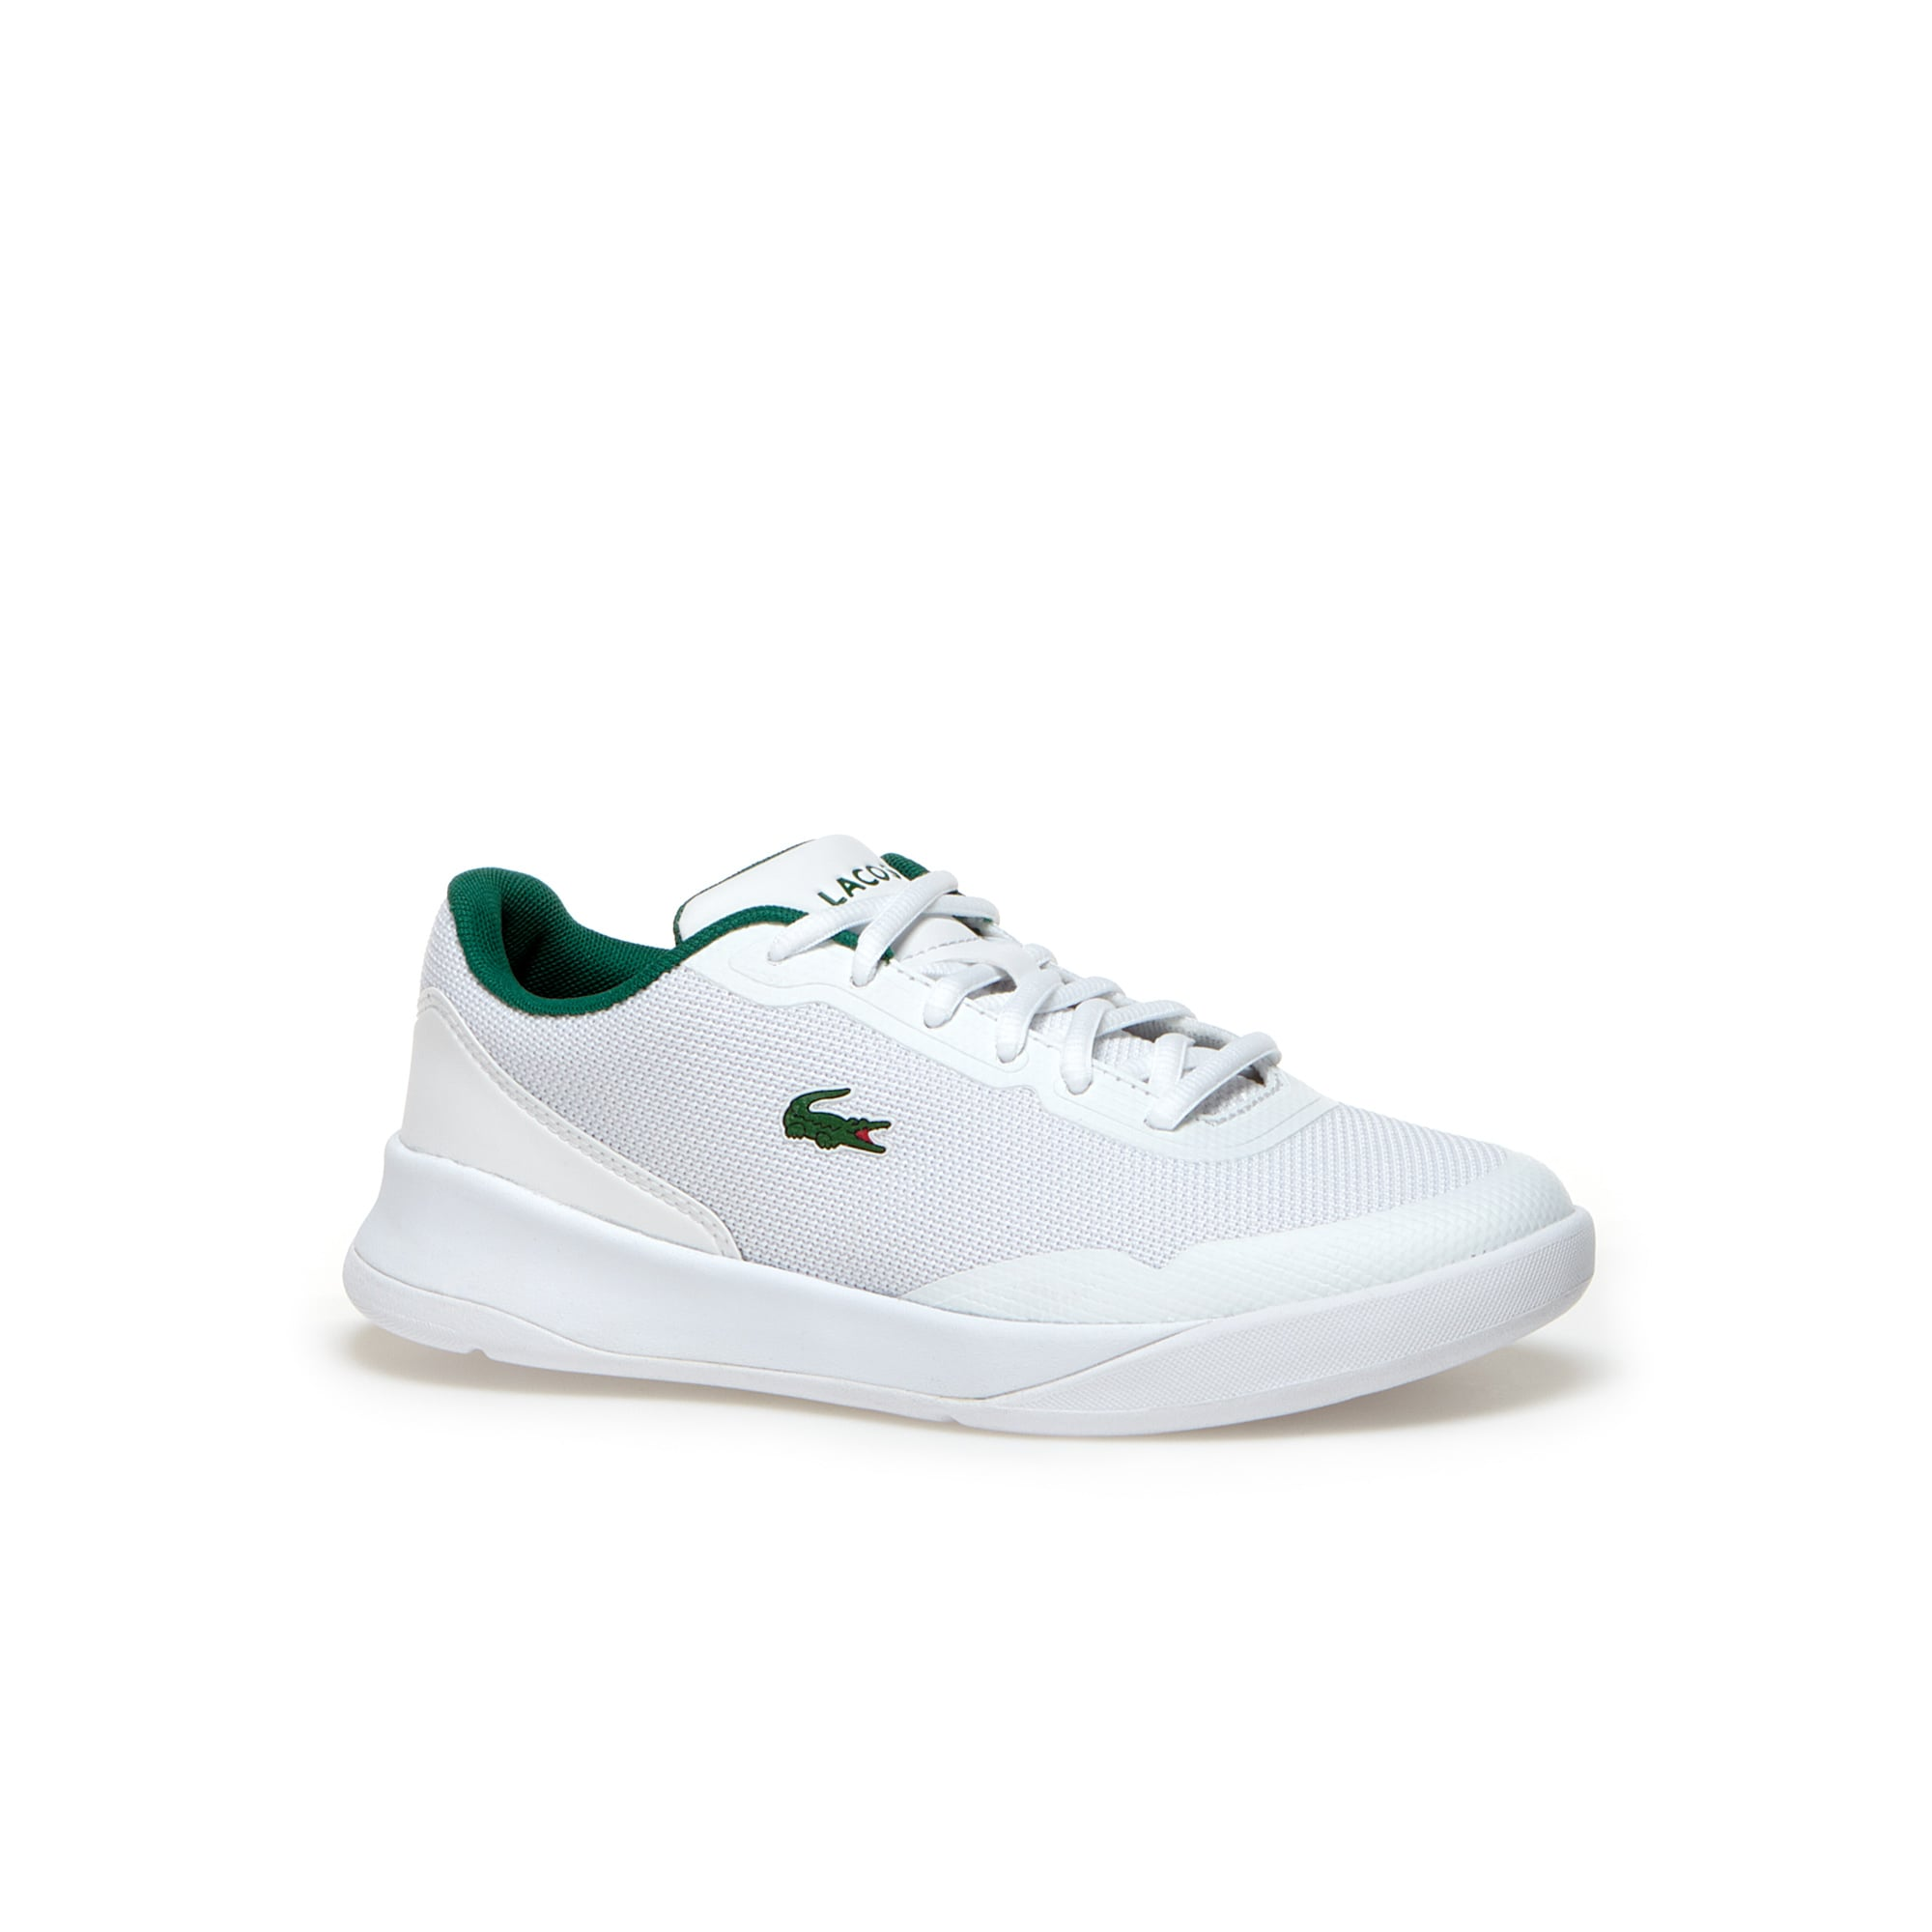 Women's LT Spirit Piqué Canvas Sneakers